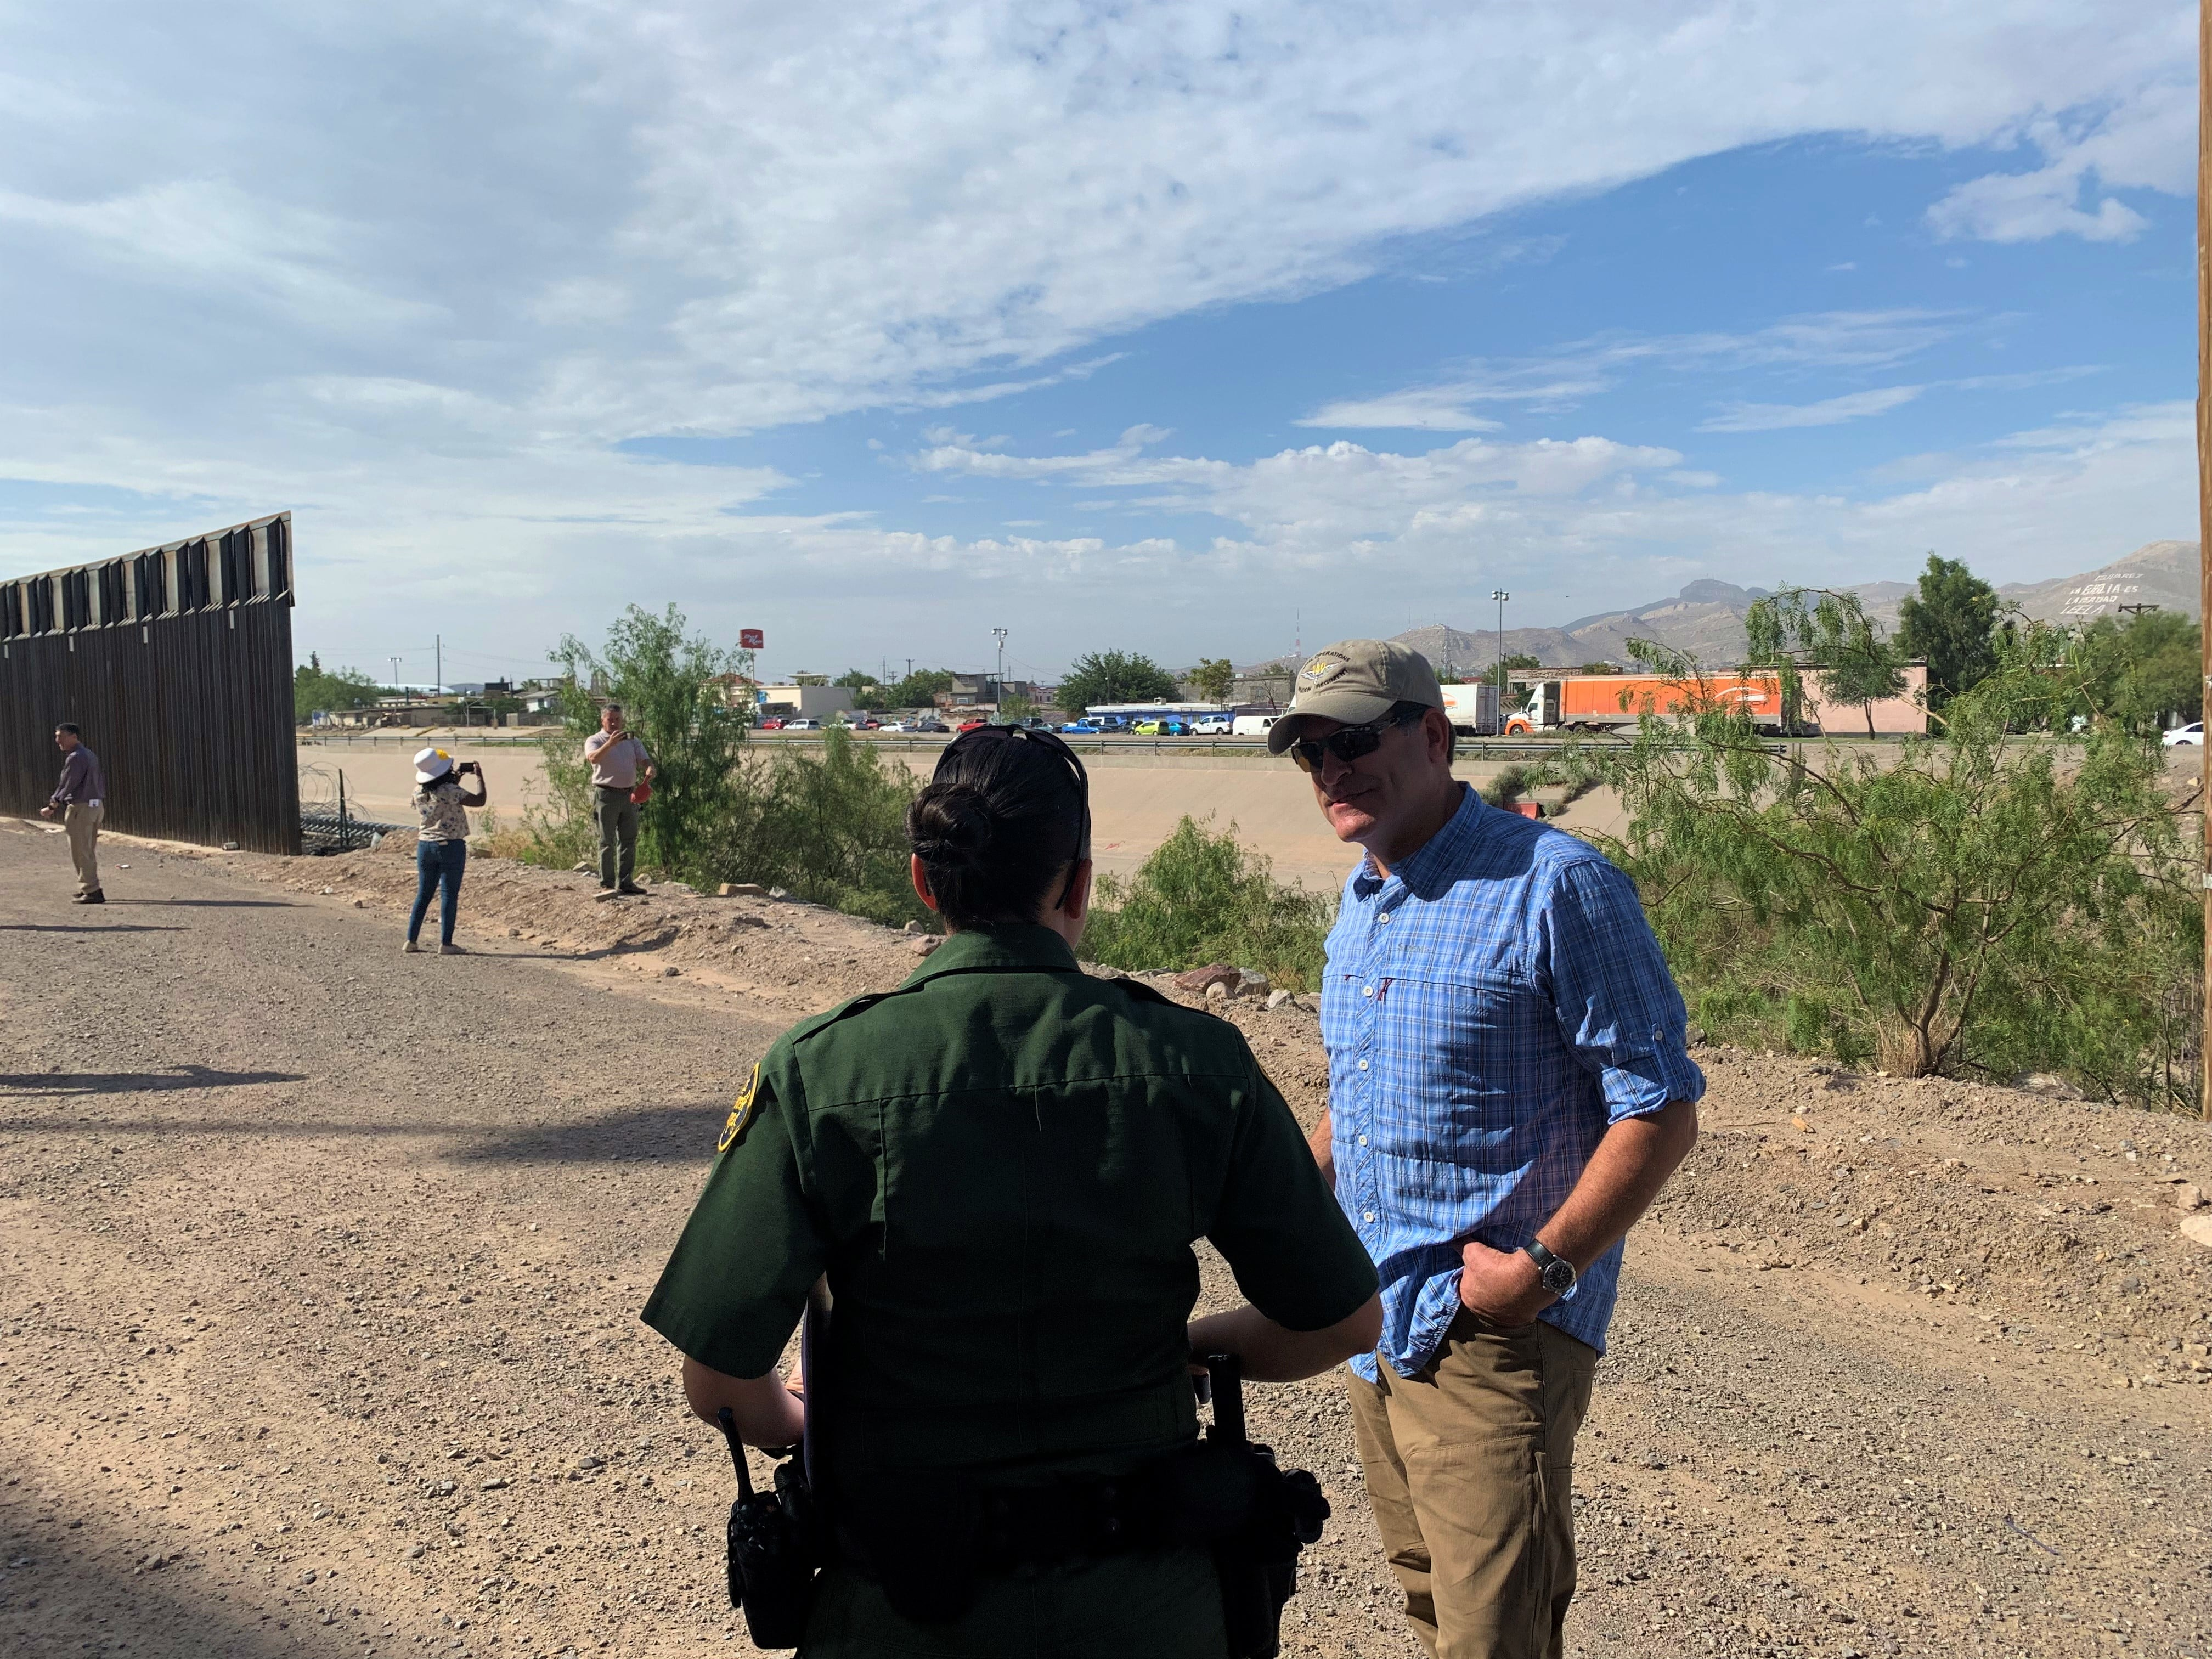 Rep. Mark Green tours border detention centers, calls AOC's claims of cruel conditions 'blatantly false'